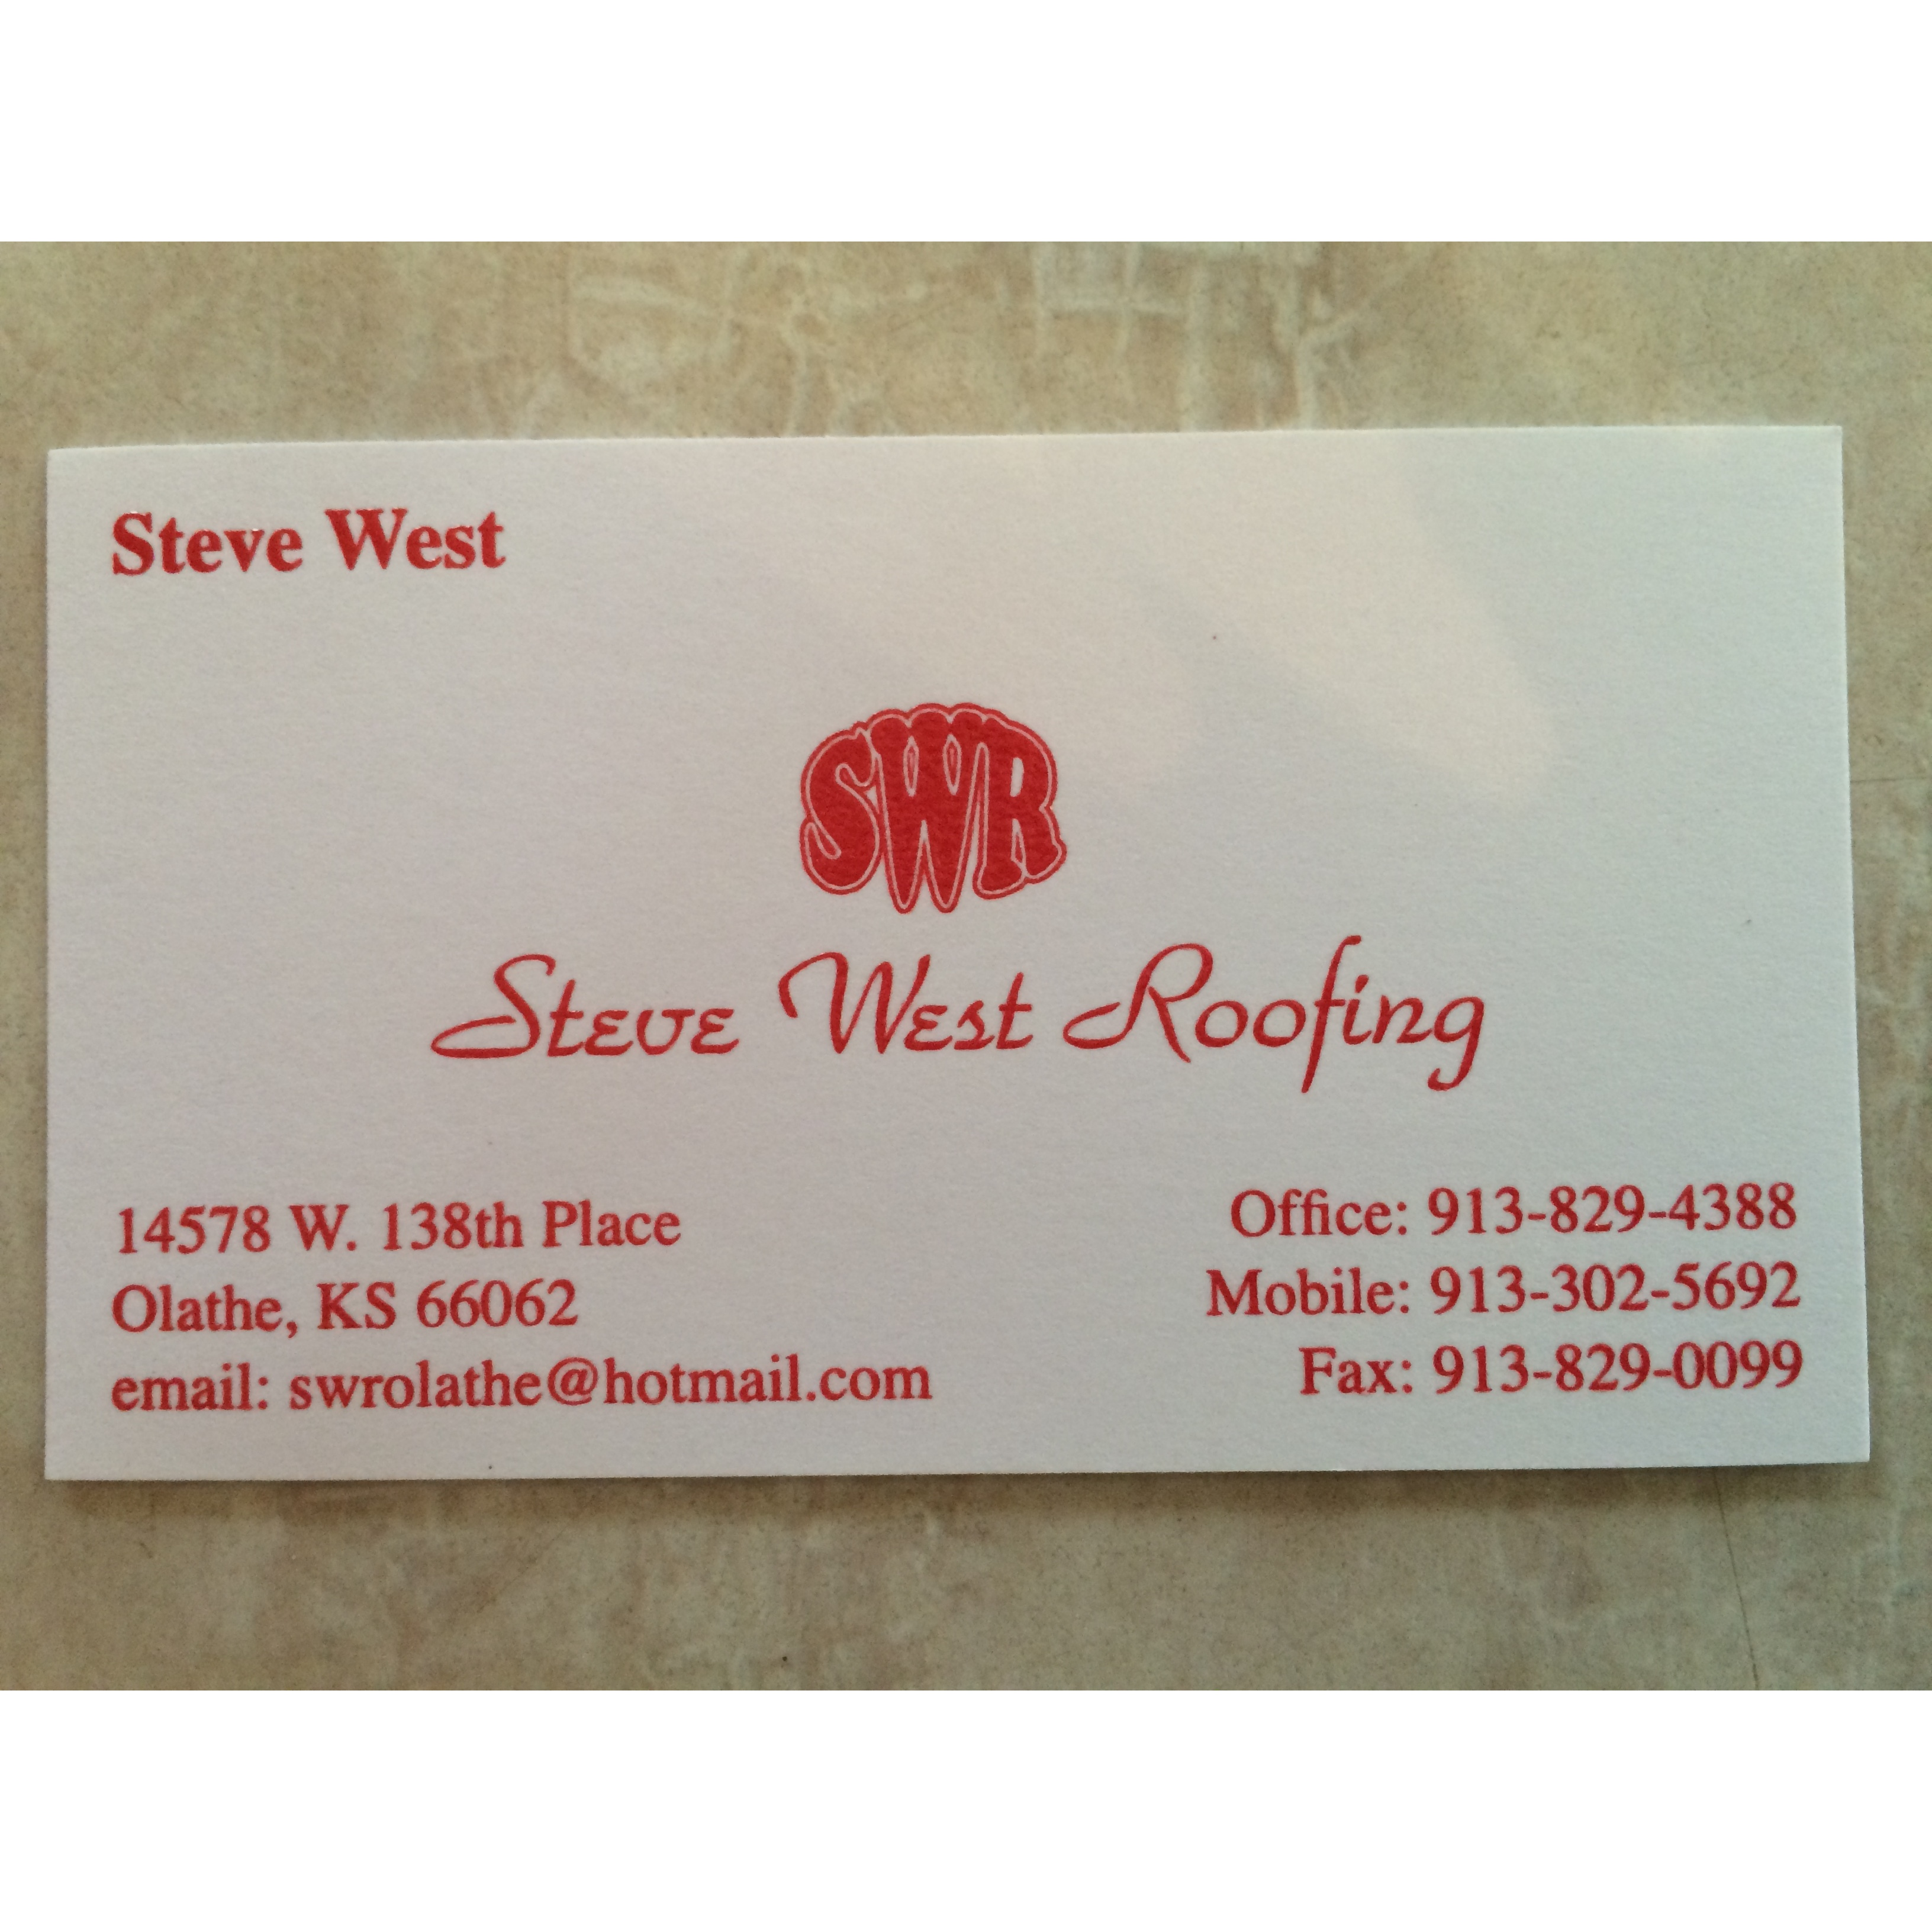 Steve West Roofing